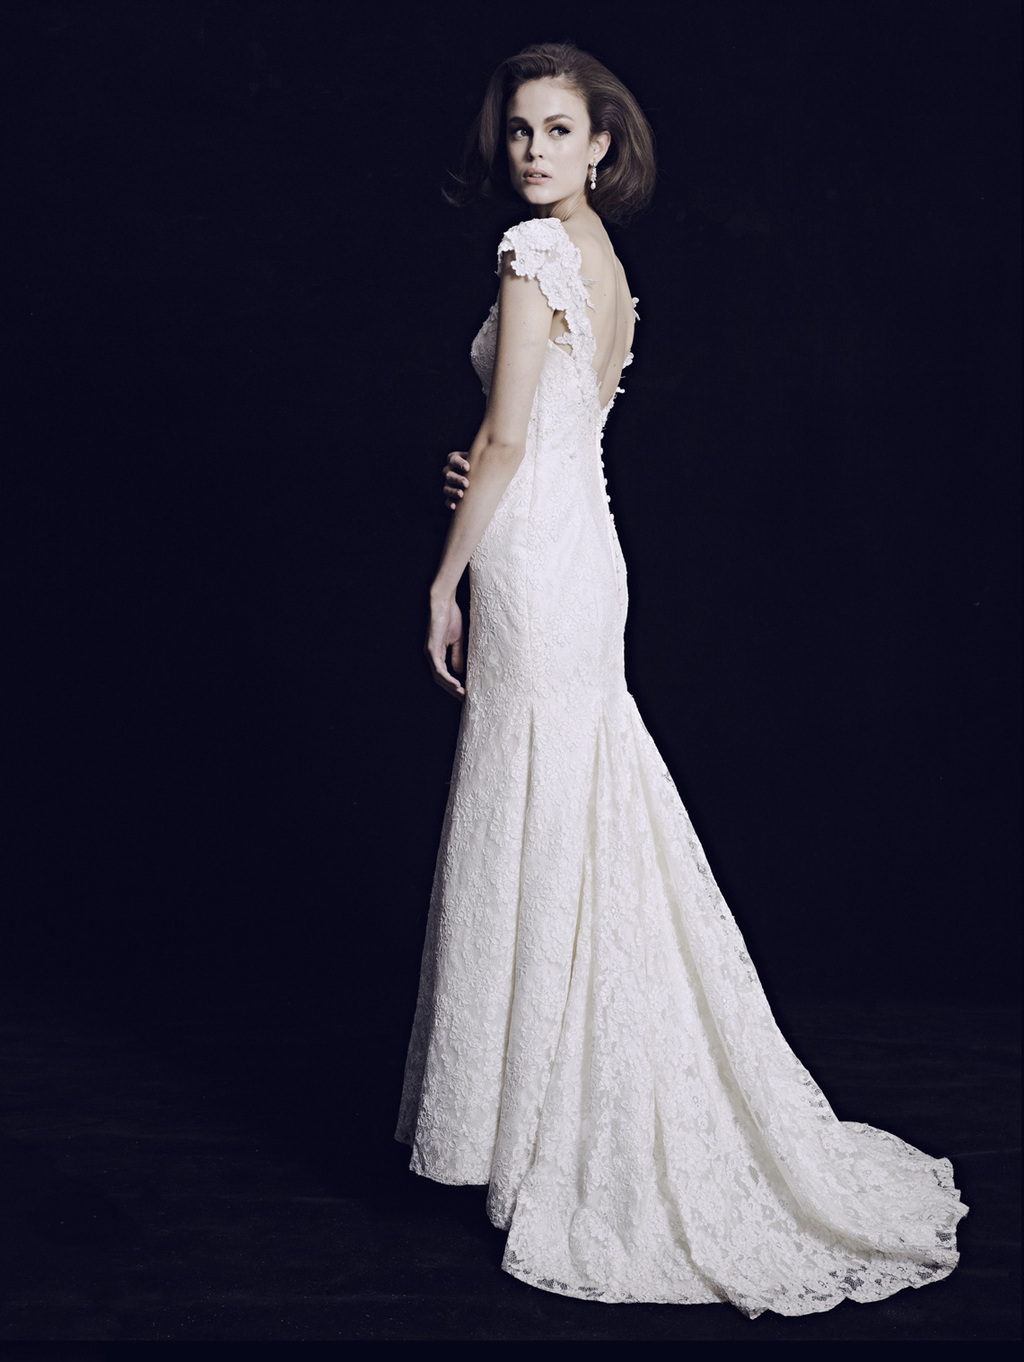 Mariana Hardwick Wedding Dress 2013 Bridal Classic 13